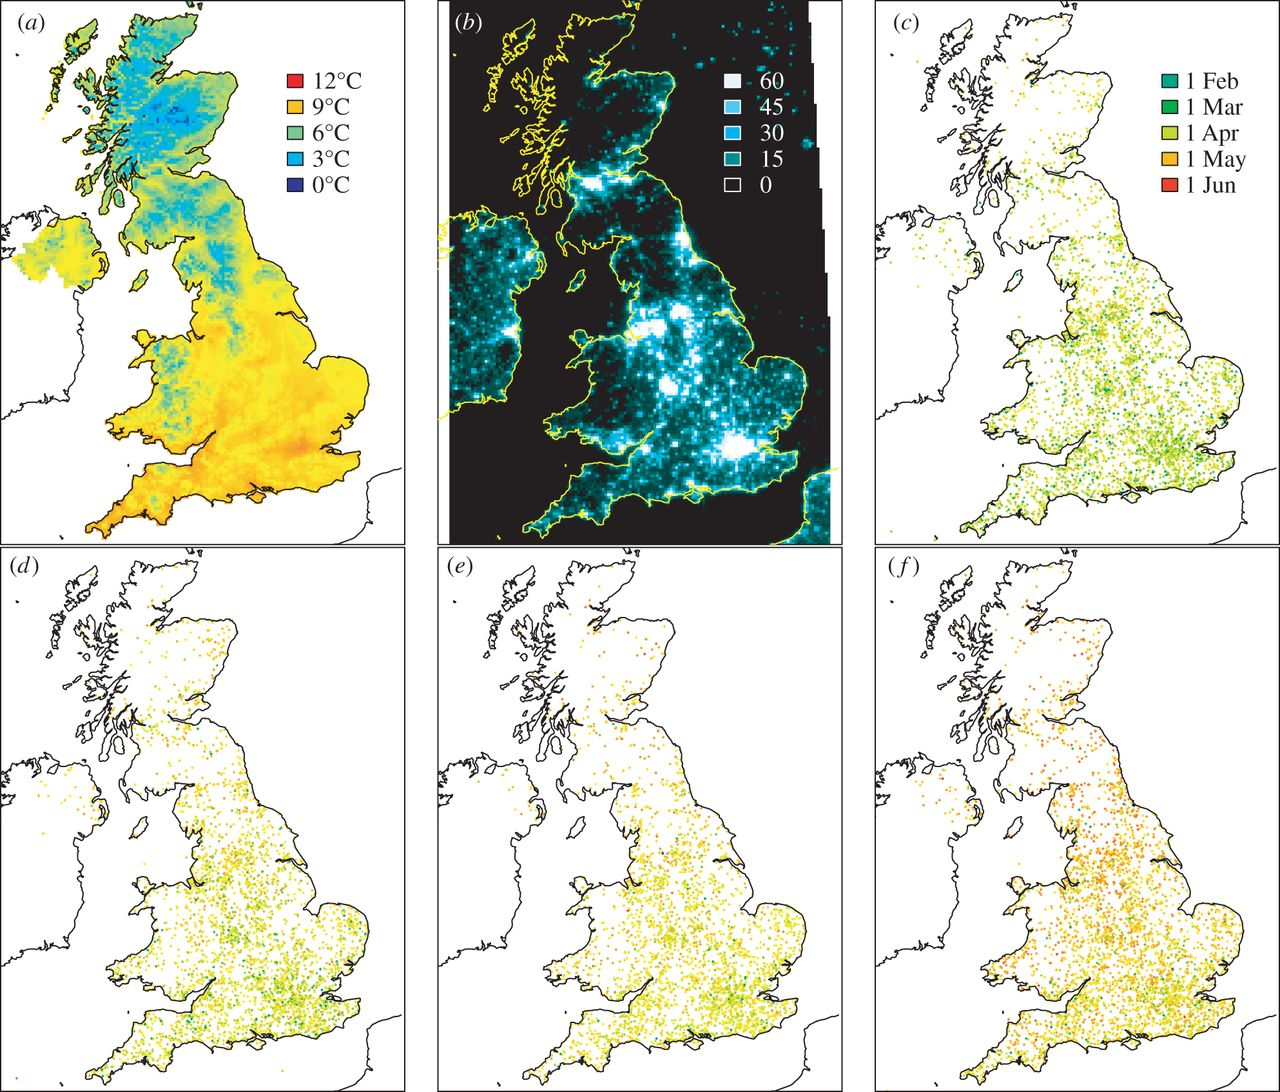 Figure 1. (a) Average spring temperatures in 2011, (b) DMSP night-time lights in 2011, (c–f) locations of budburst data for all years, for (in order of budburst) sycamore (c), beech (d), oak (e) and ash (f).